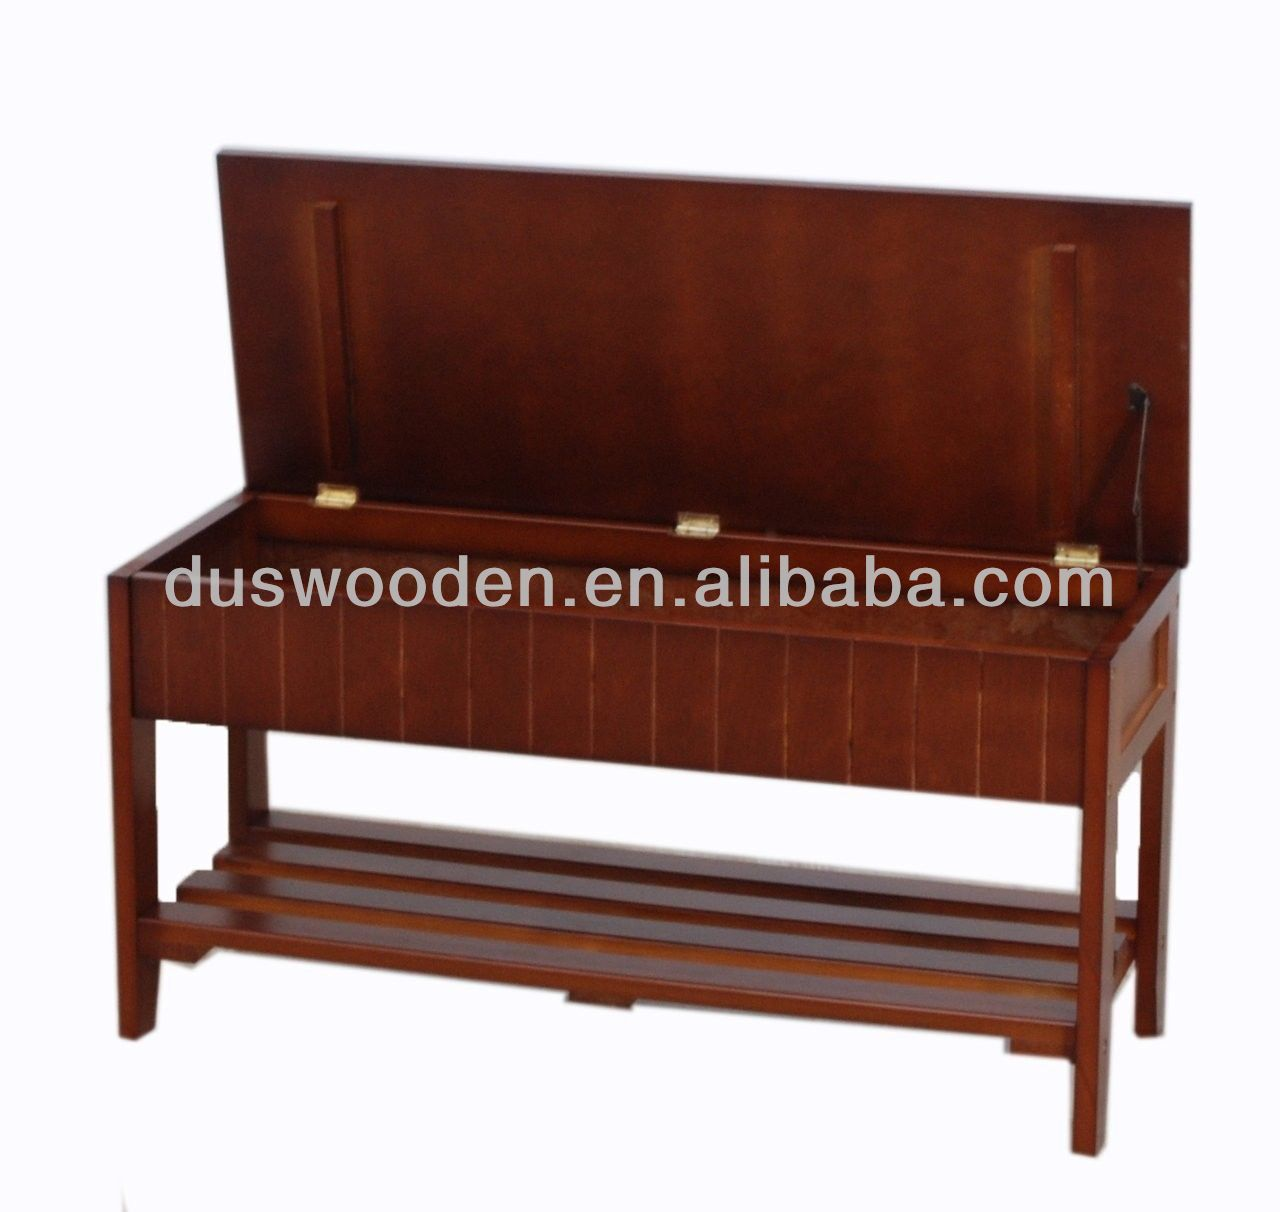 2014 Hot Solid Wood Shoe Bench with Storage